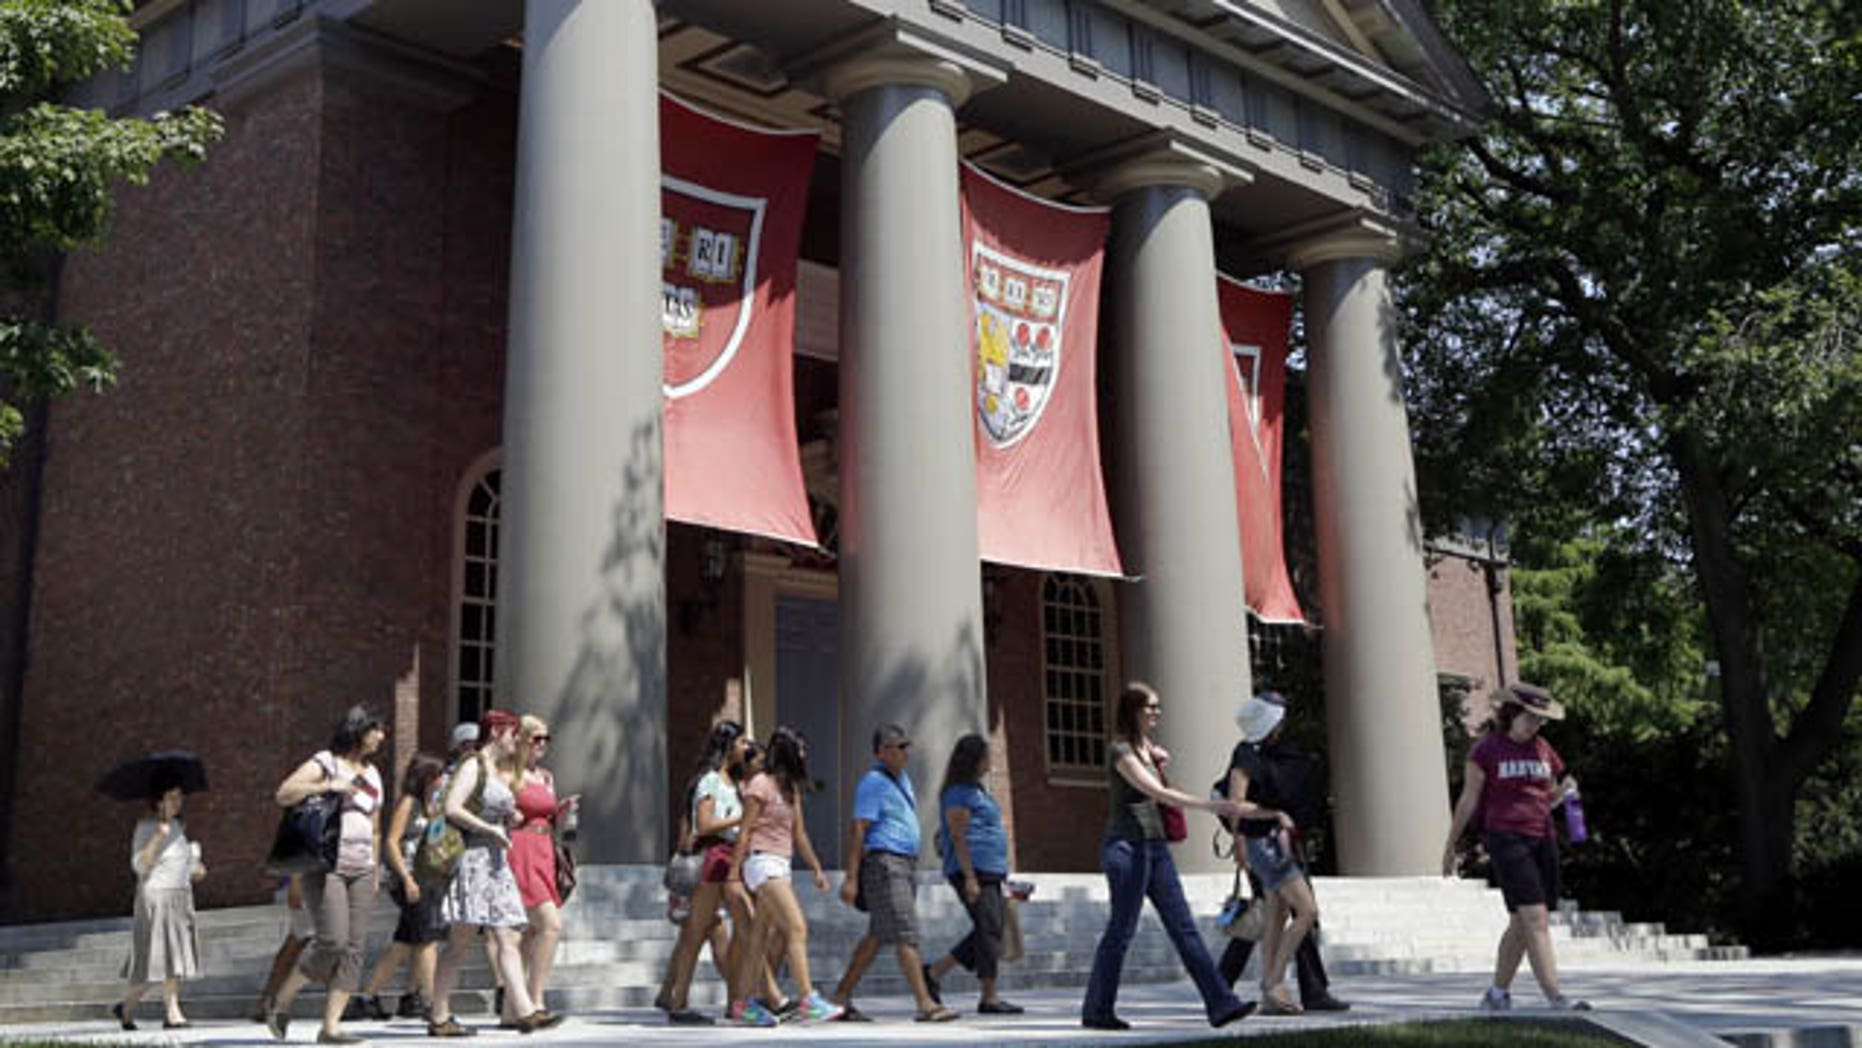 FILE - In this Aug. 30, 2012, file photo, people are led on a tour on the campus of Harvard University in Cambridge, Mass.  (AP Photo)